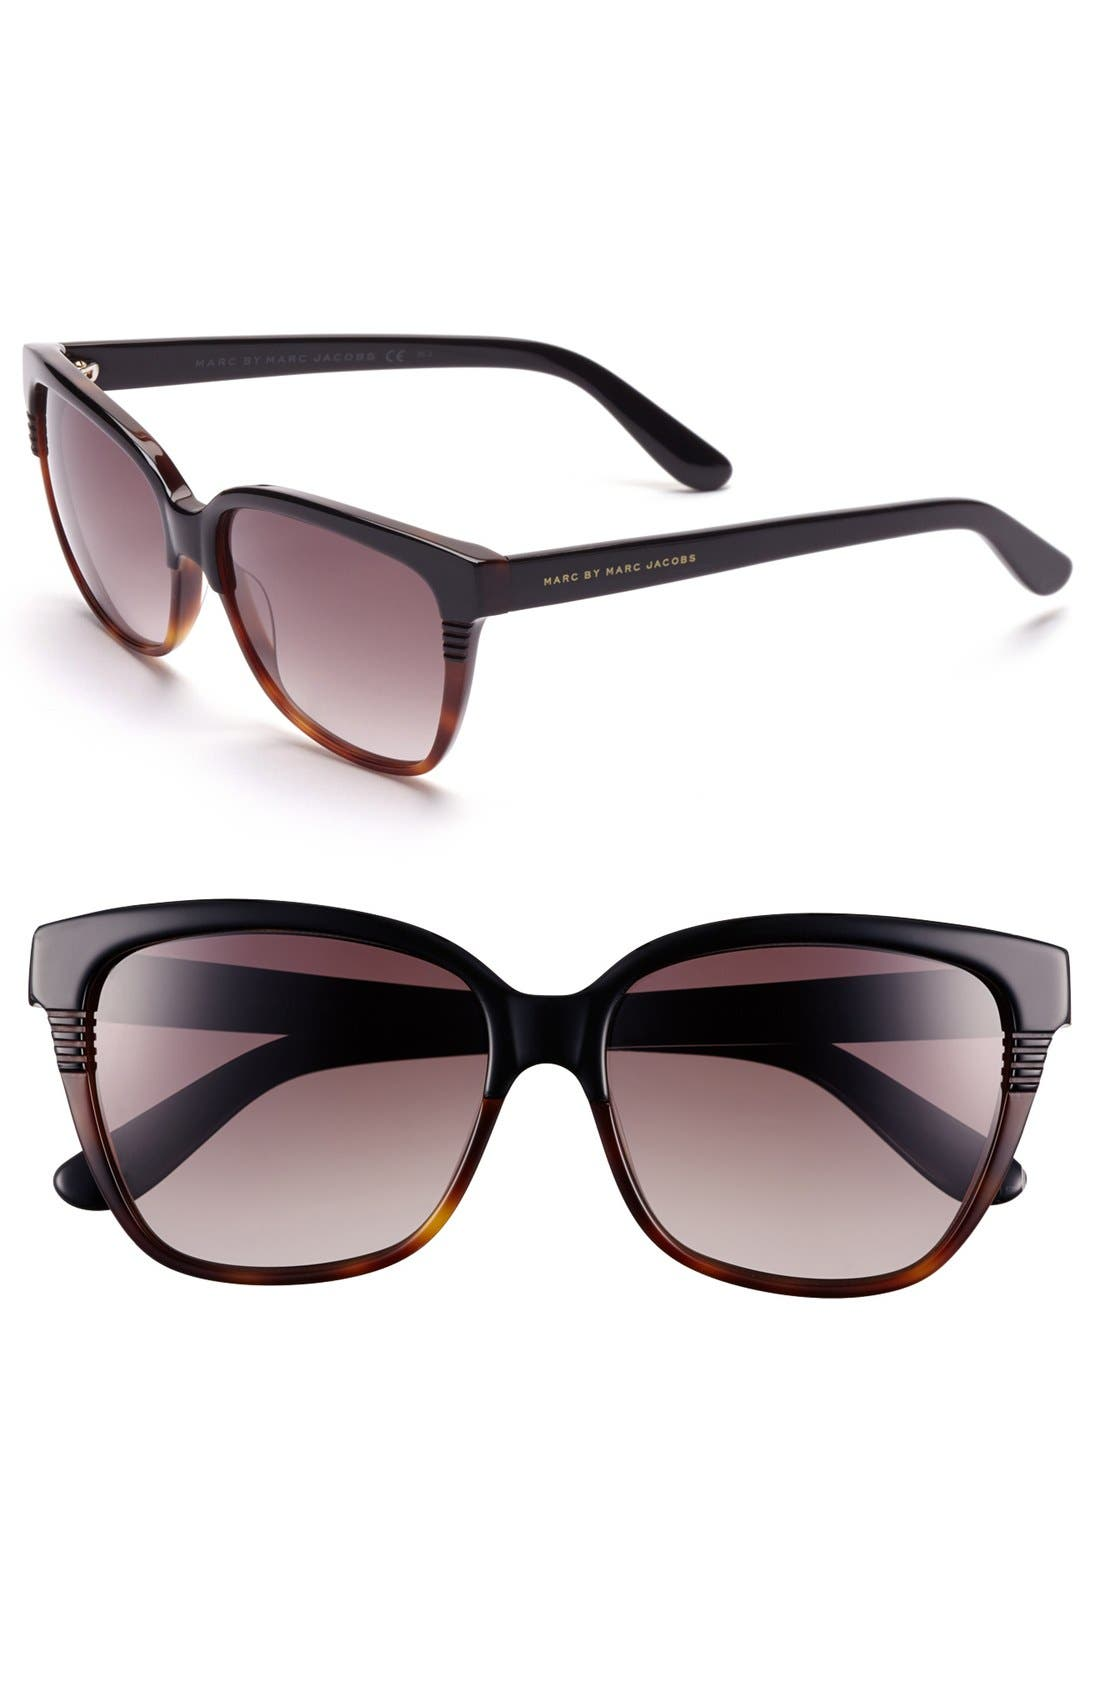 Main Image - MARC BY MARC JACOBS 56mm Retro Sunglasses